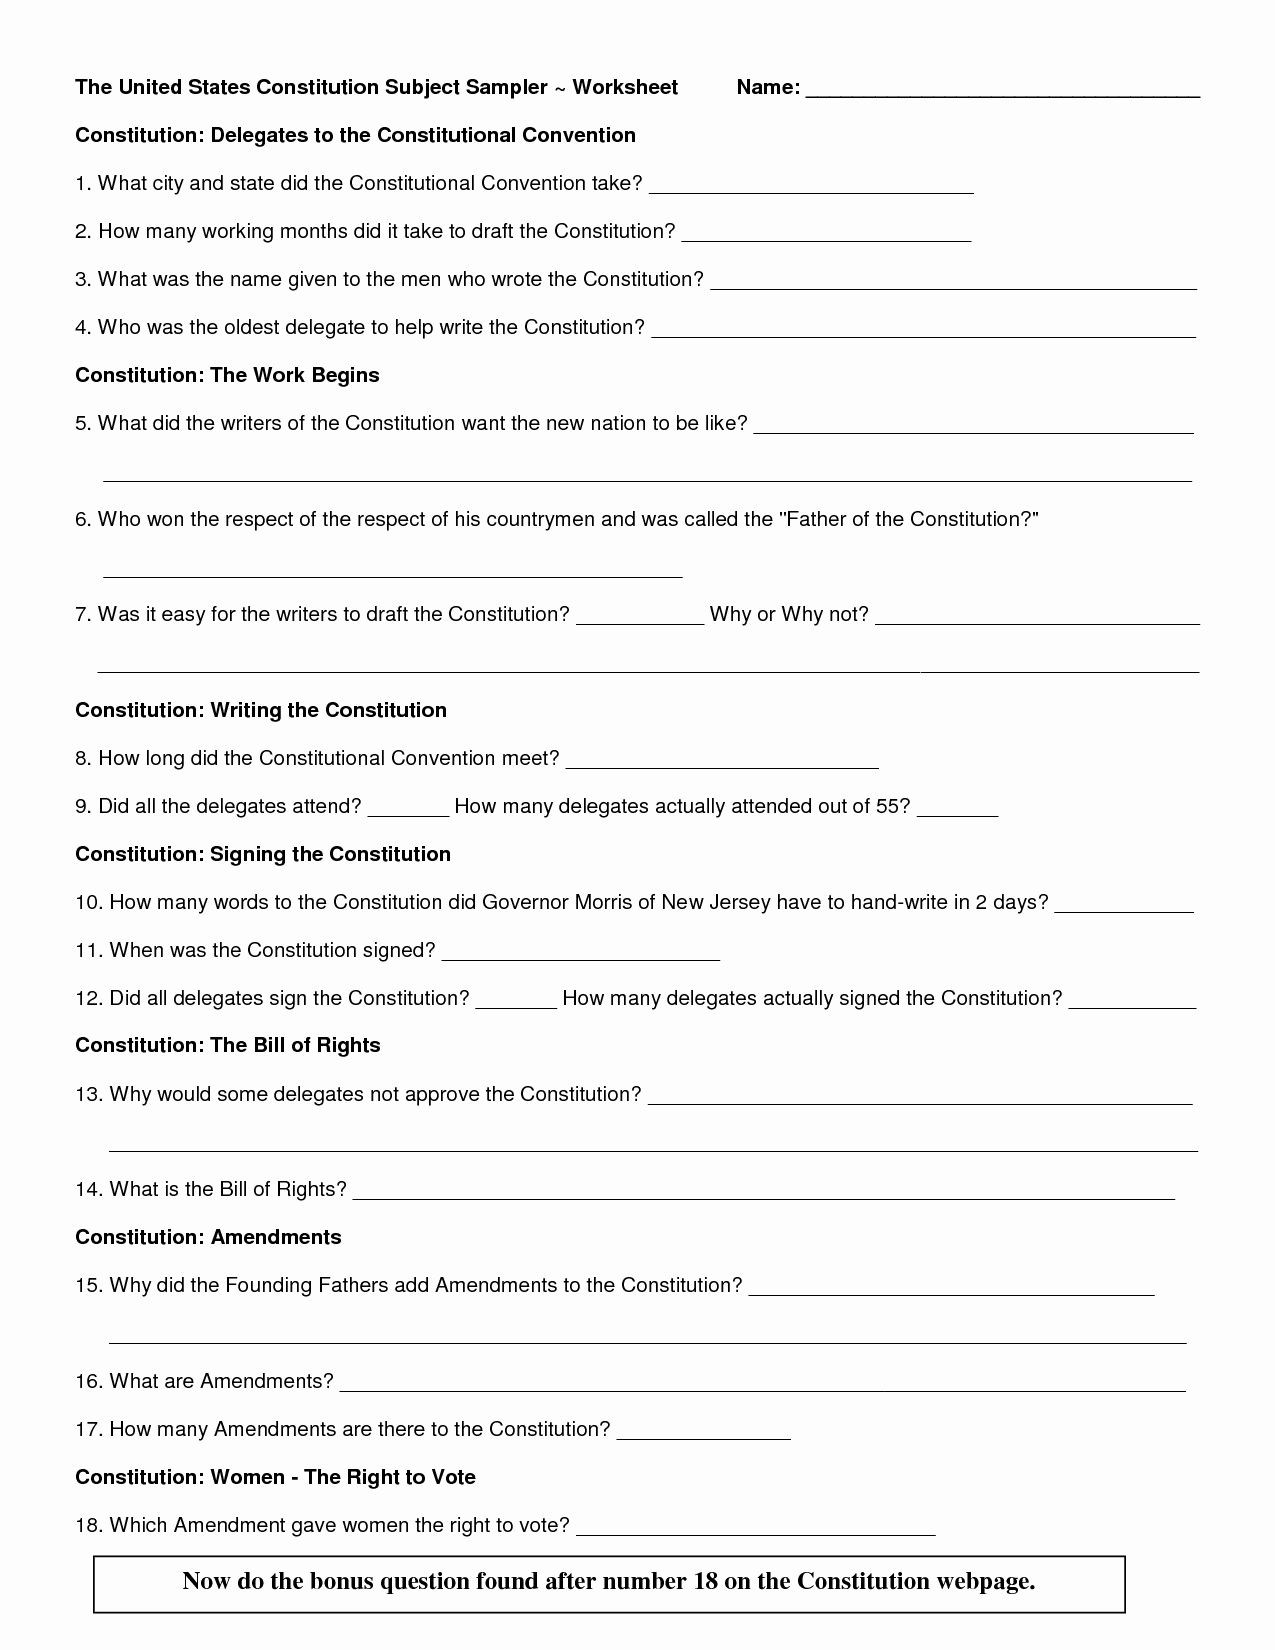 The Us Constitution Worksheet 50 the Us Constitution Worksheet 2020